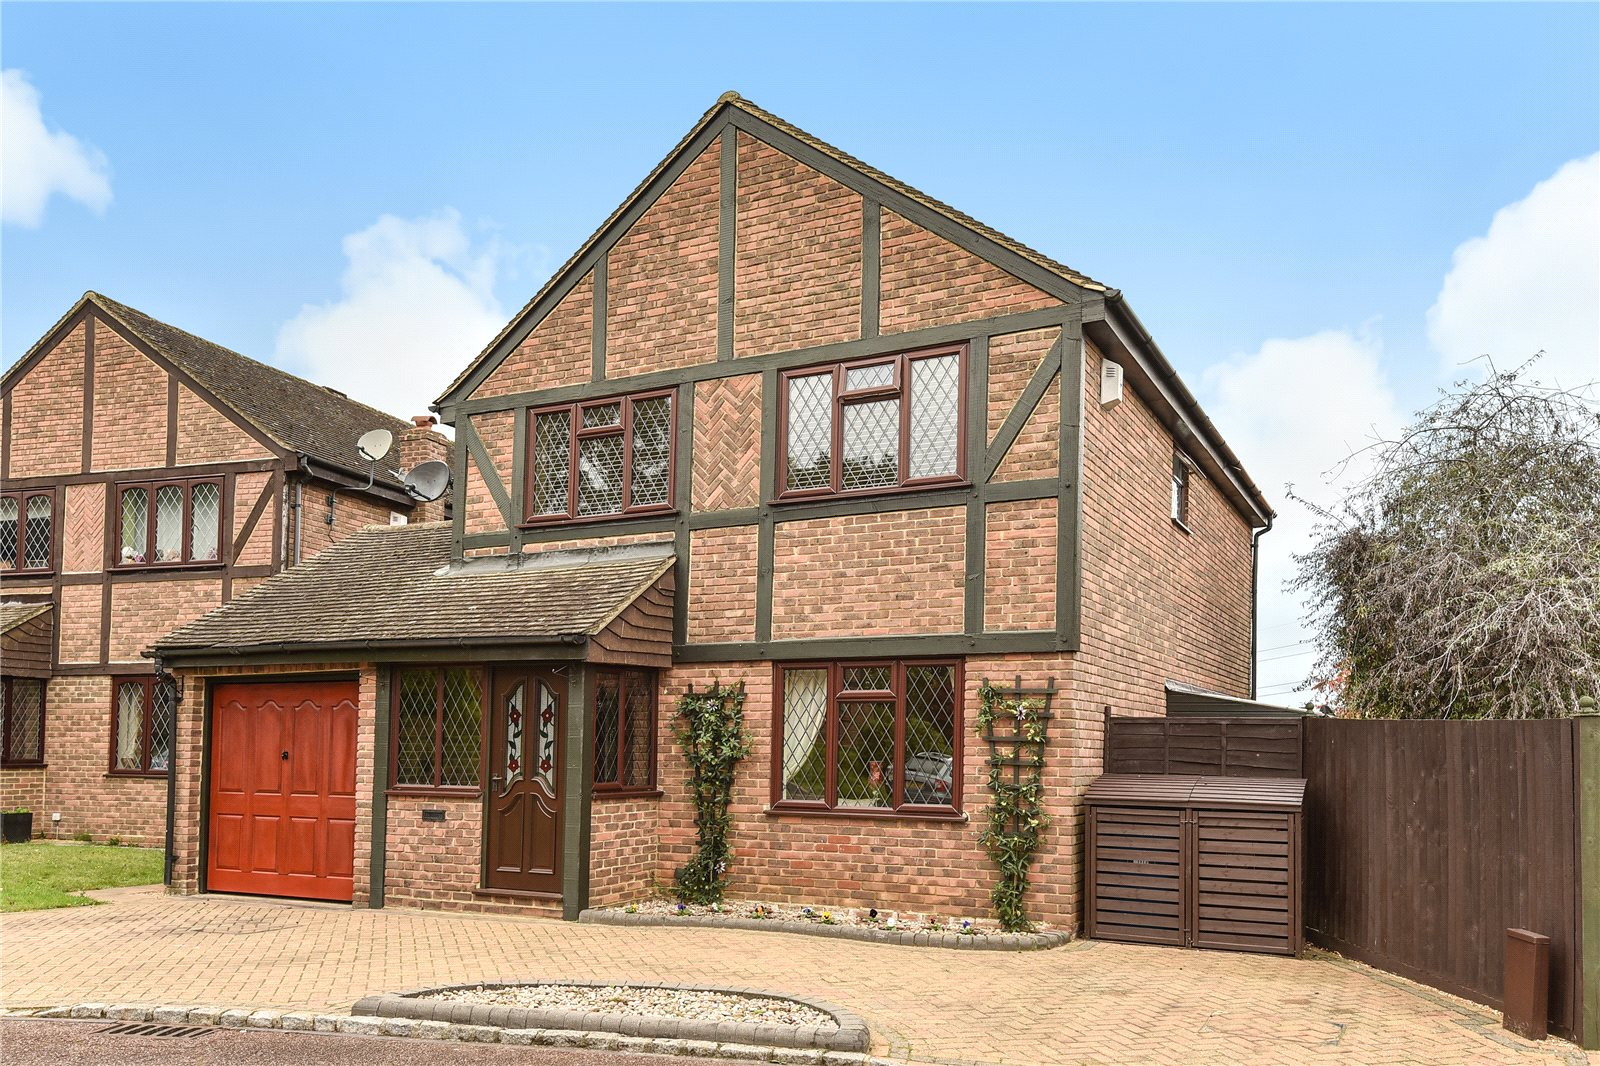 4 Bedrooms Detached House for sale in Darleydale Close, Owlsmoor, Sandhurst, Berkshire, GU47